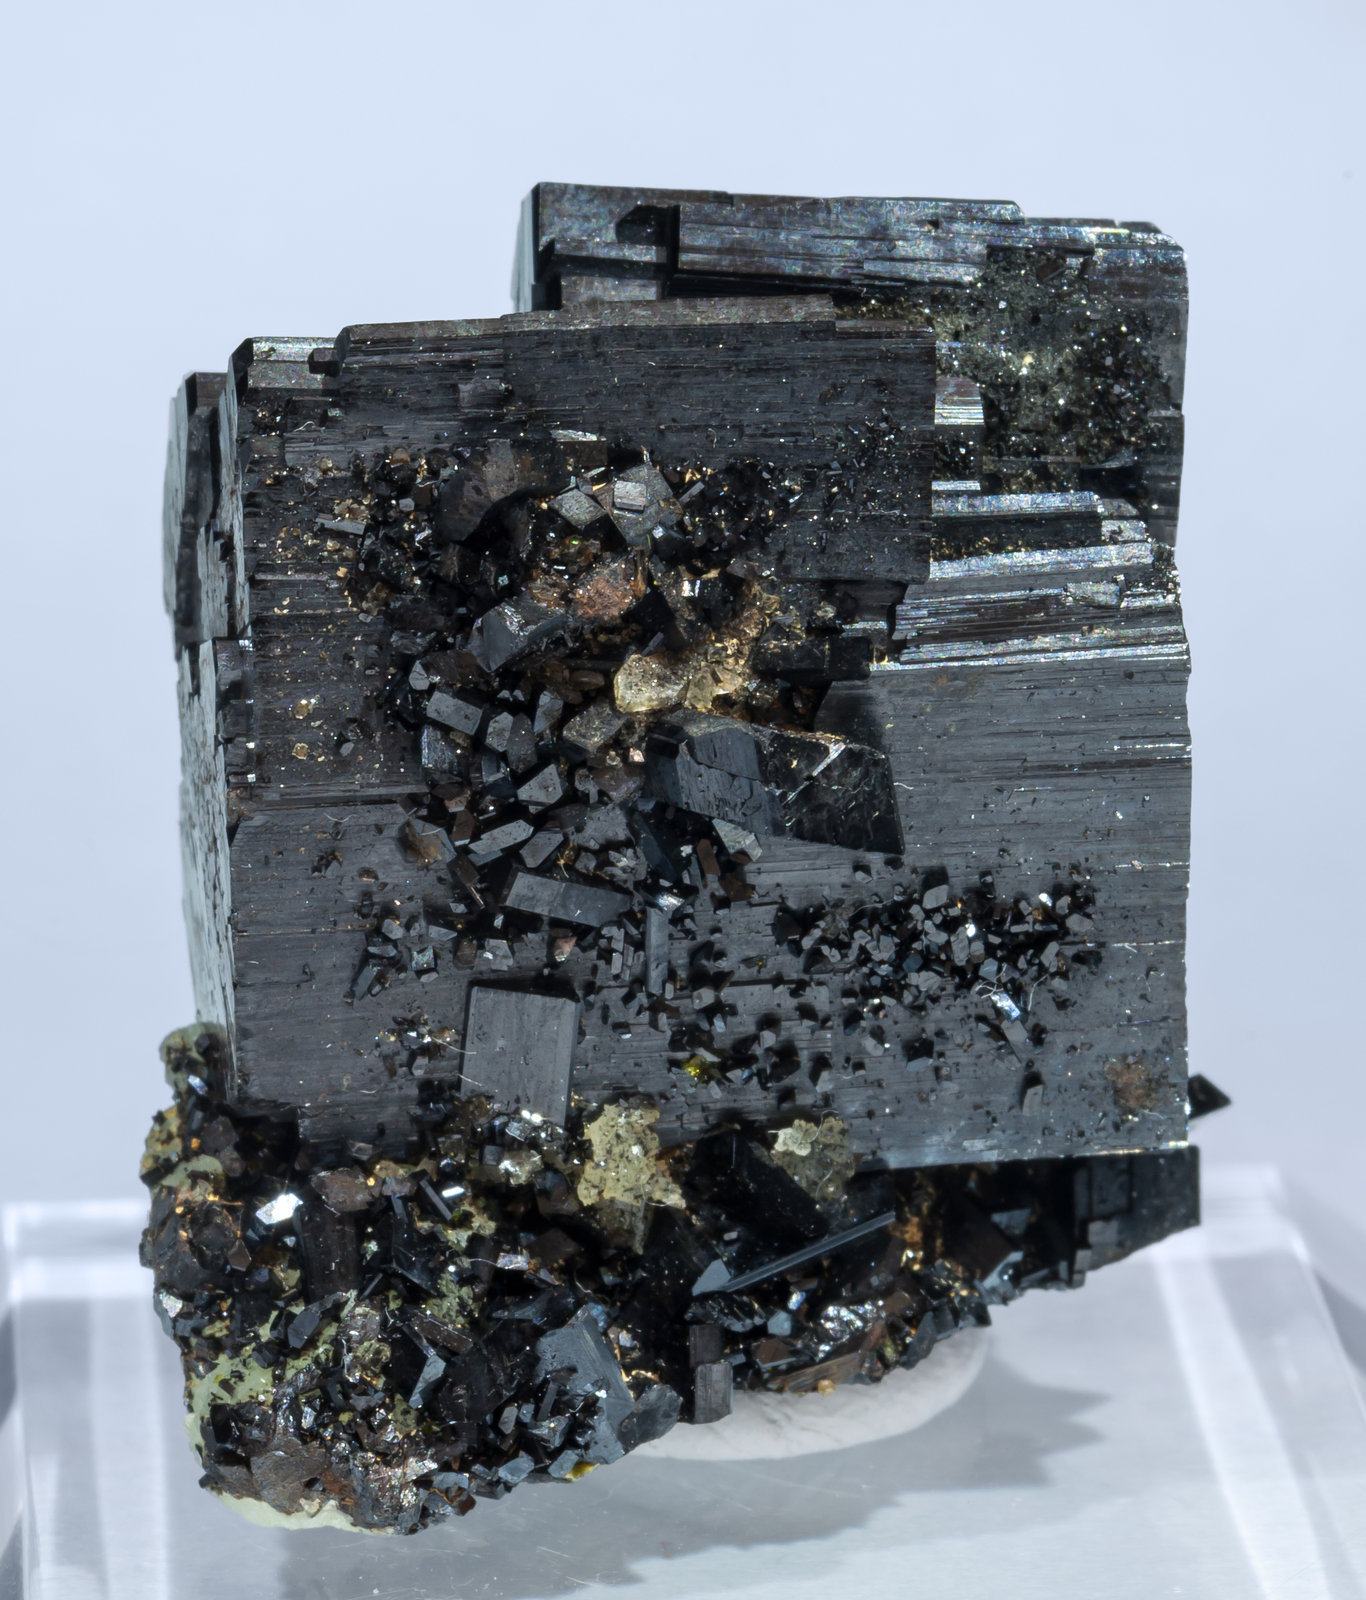 specimens/s_imagesAI3/Babingtonite-CA67AI3f.jpg